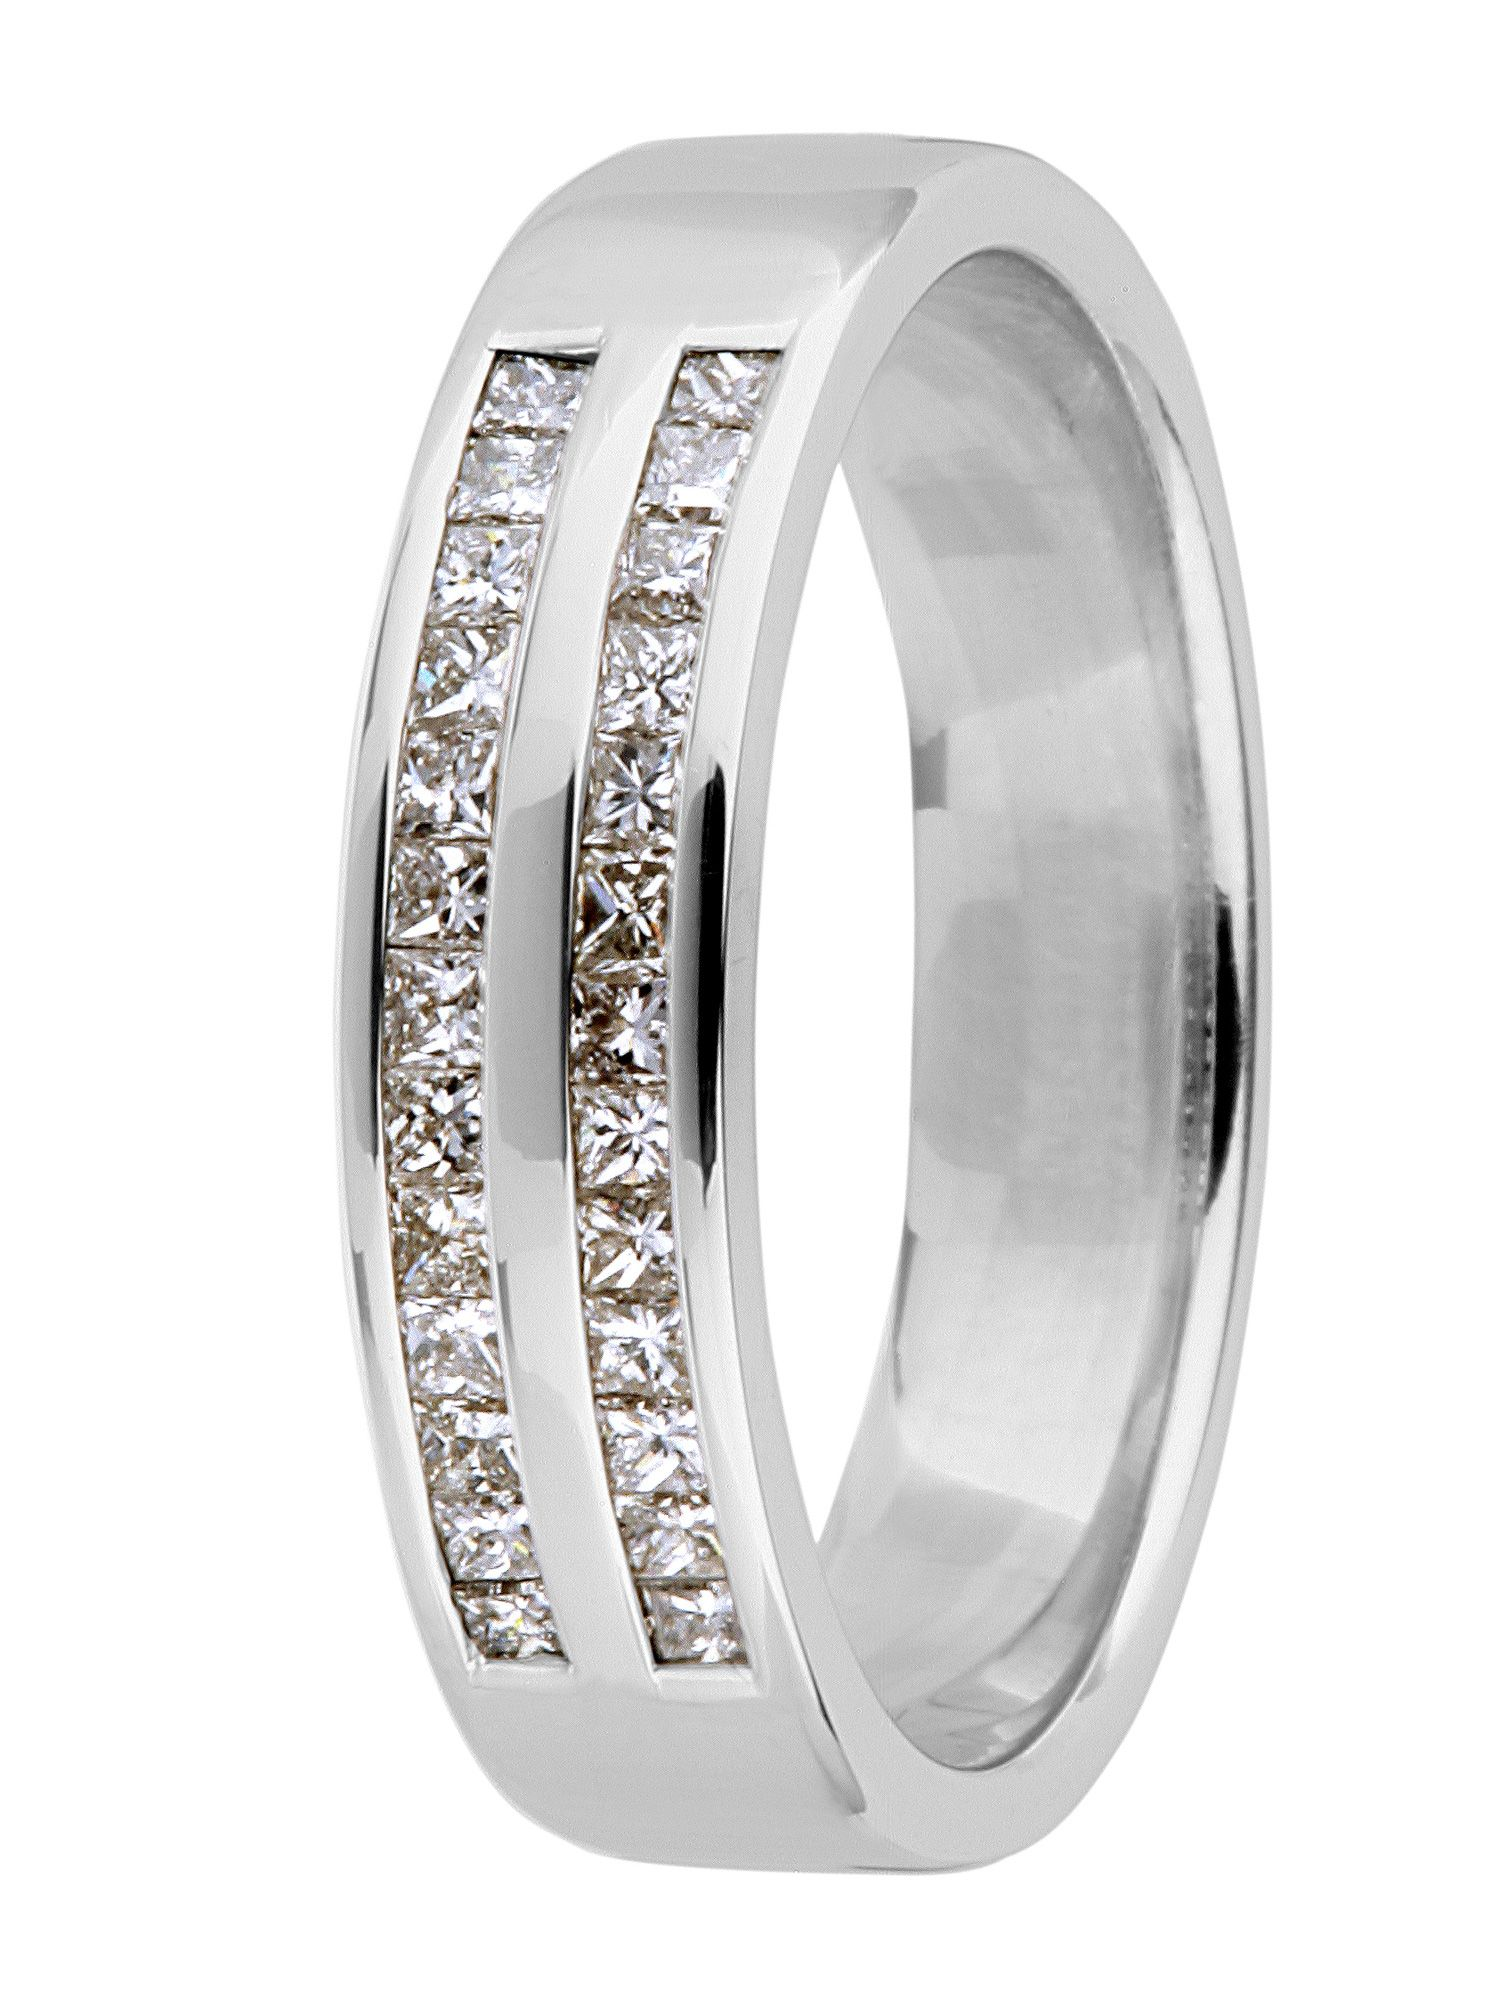 Brides 18ct gold diamond wedding ring - White Gold